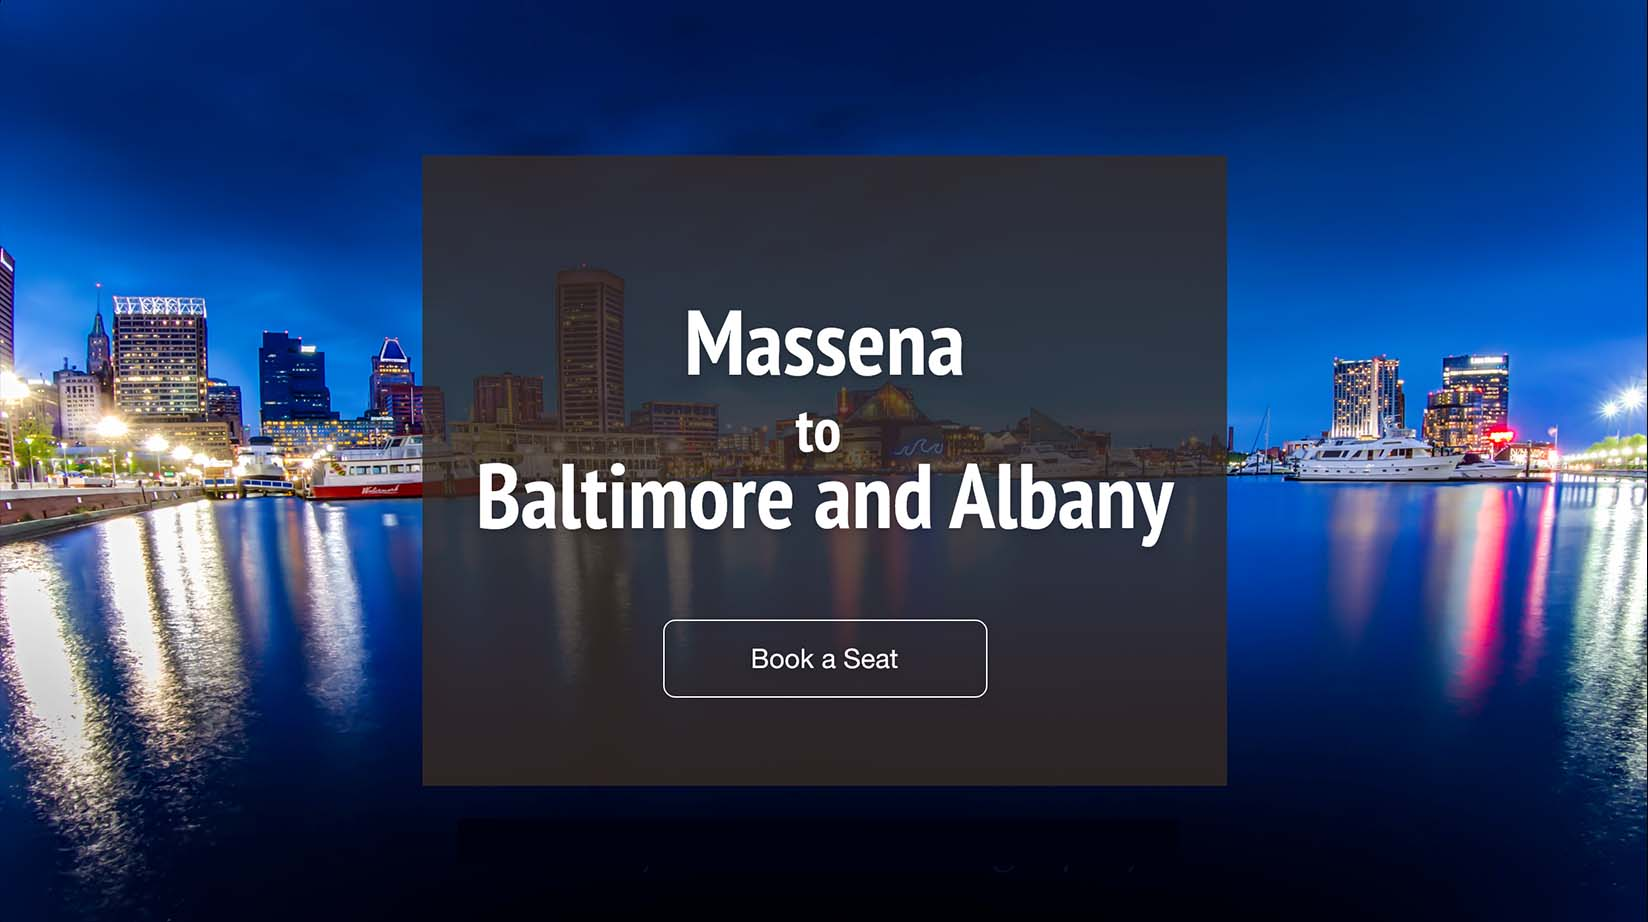 Massena (MSS) to Baltimore (BWI)